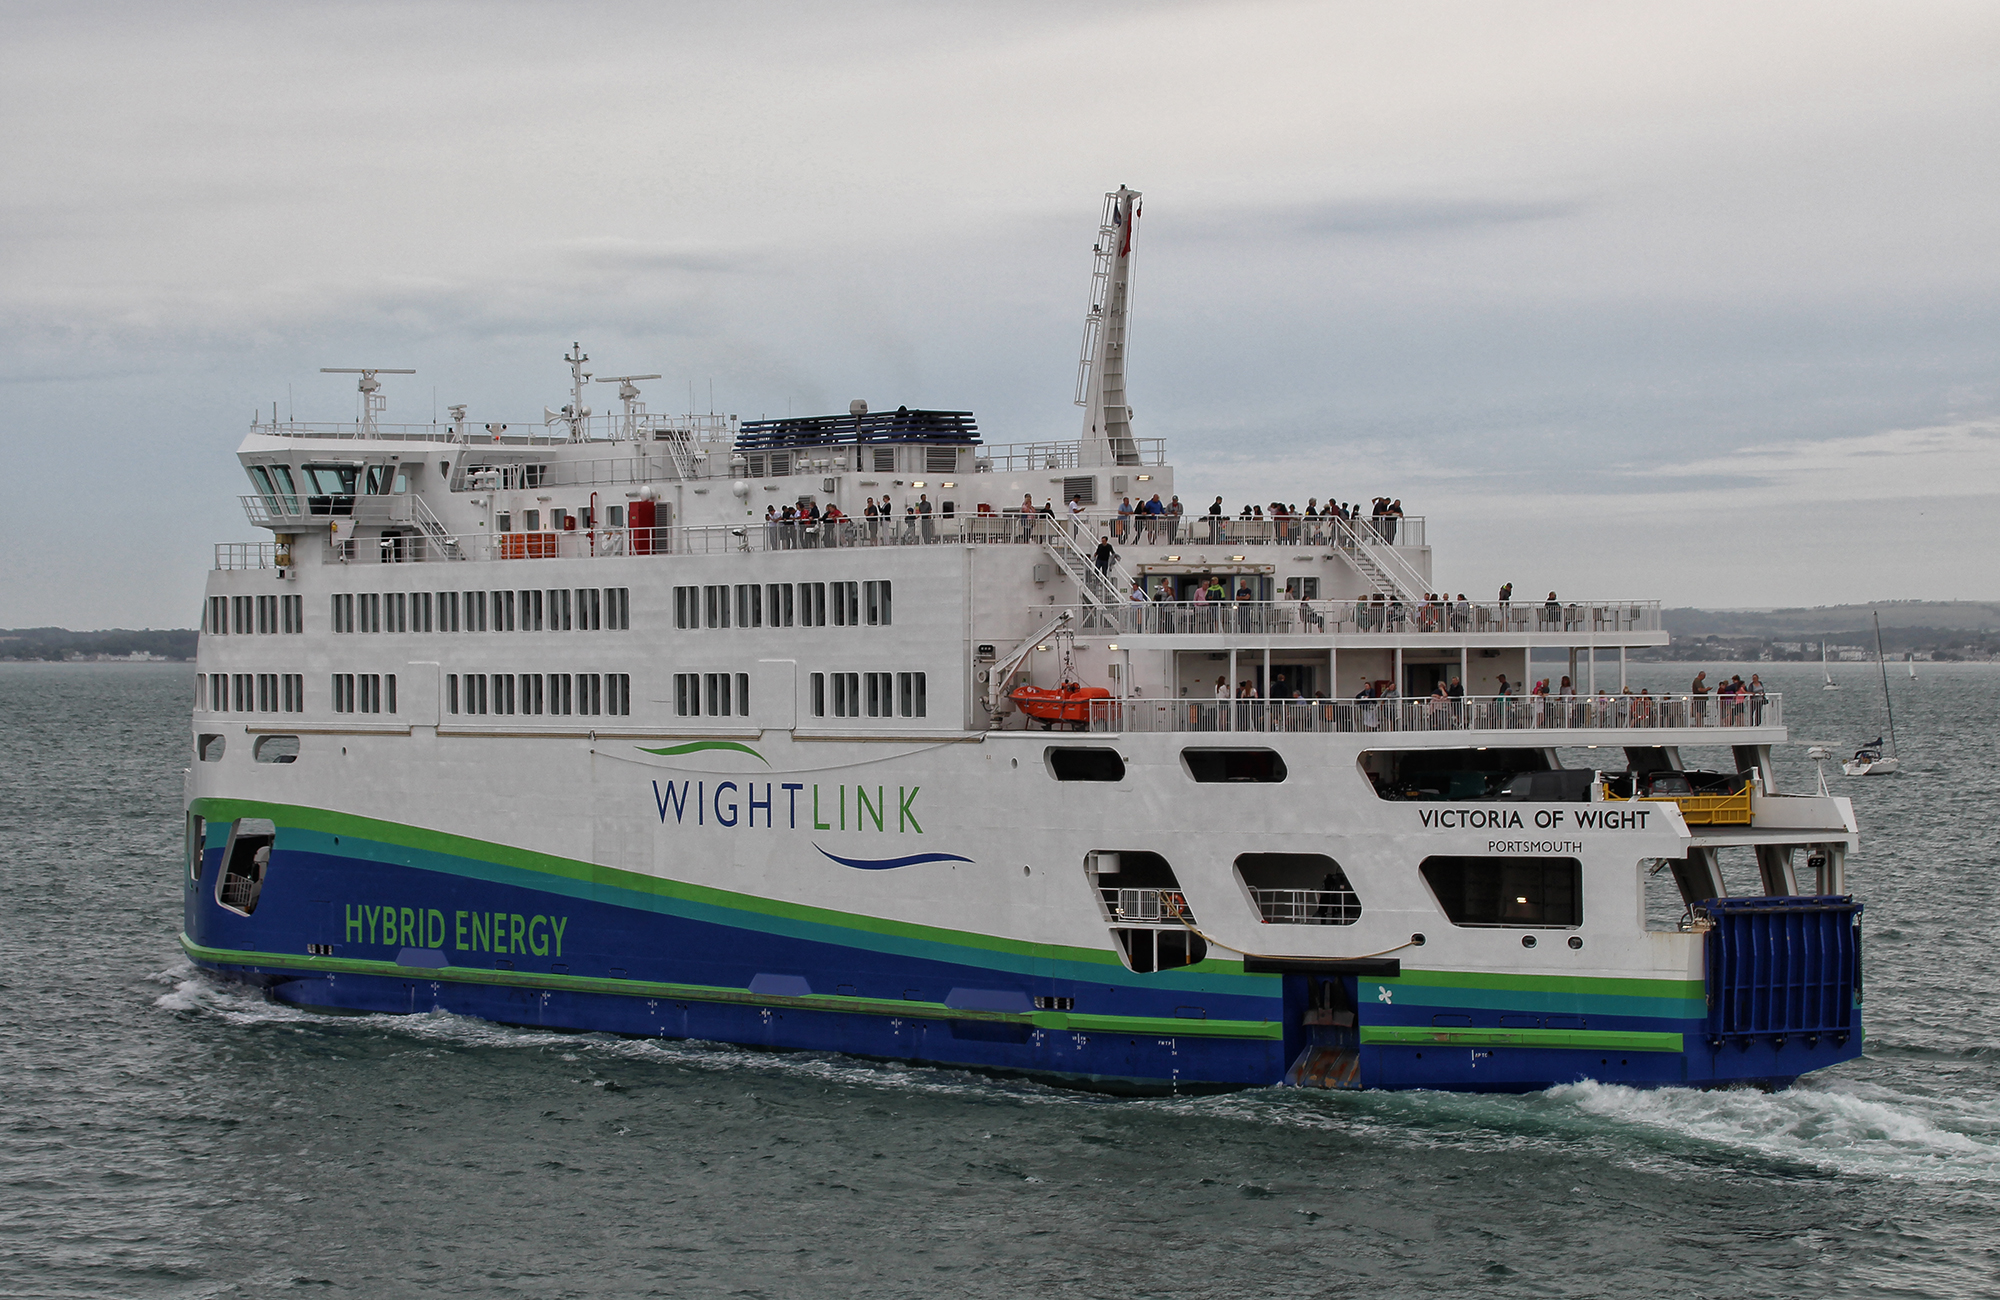 Victoria of Wight © Ray Goodfellow